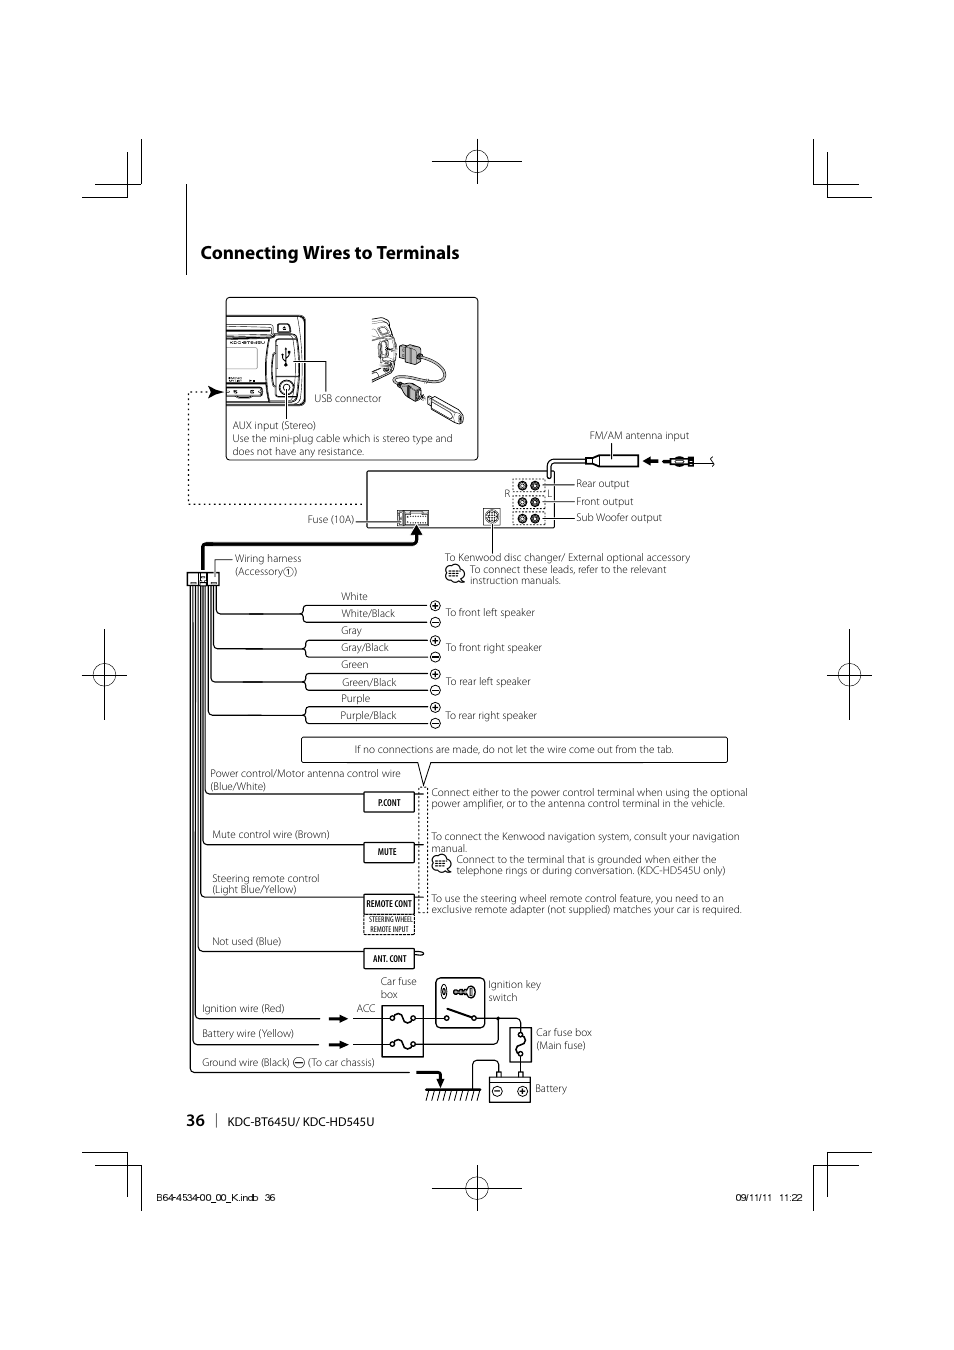 yamaha qt50 wiring diagram bromine phase sketch kenwood kdc hd545u bb purebuild co connecting wires to terminals user manual rh manualsdir com